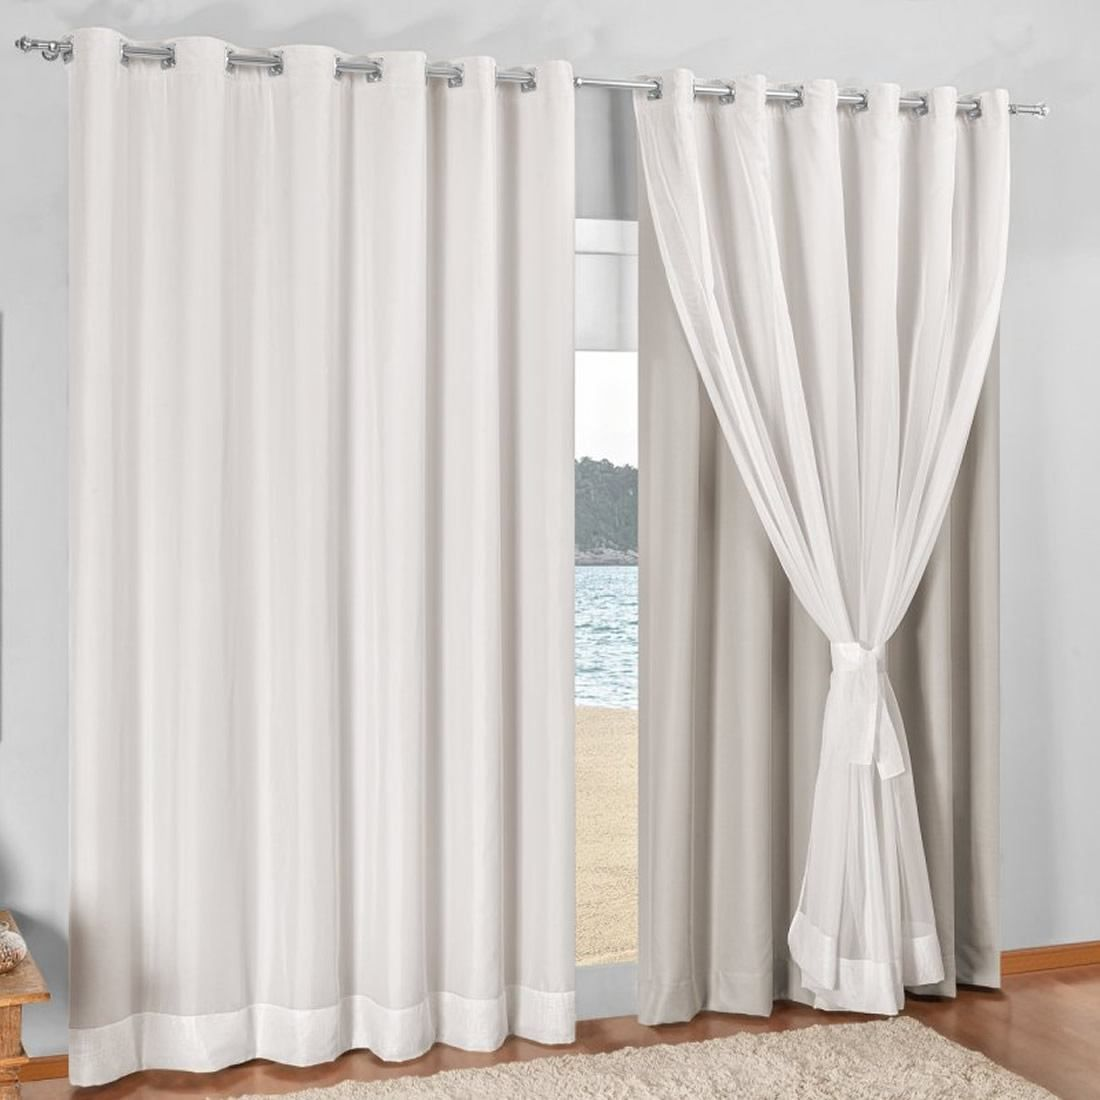 Cortina Blackout Com Voil Curtains Pinterest Cortinas  -> Argollas Para Cortinas Sala